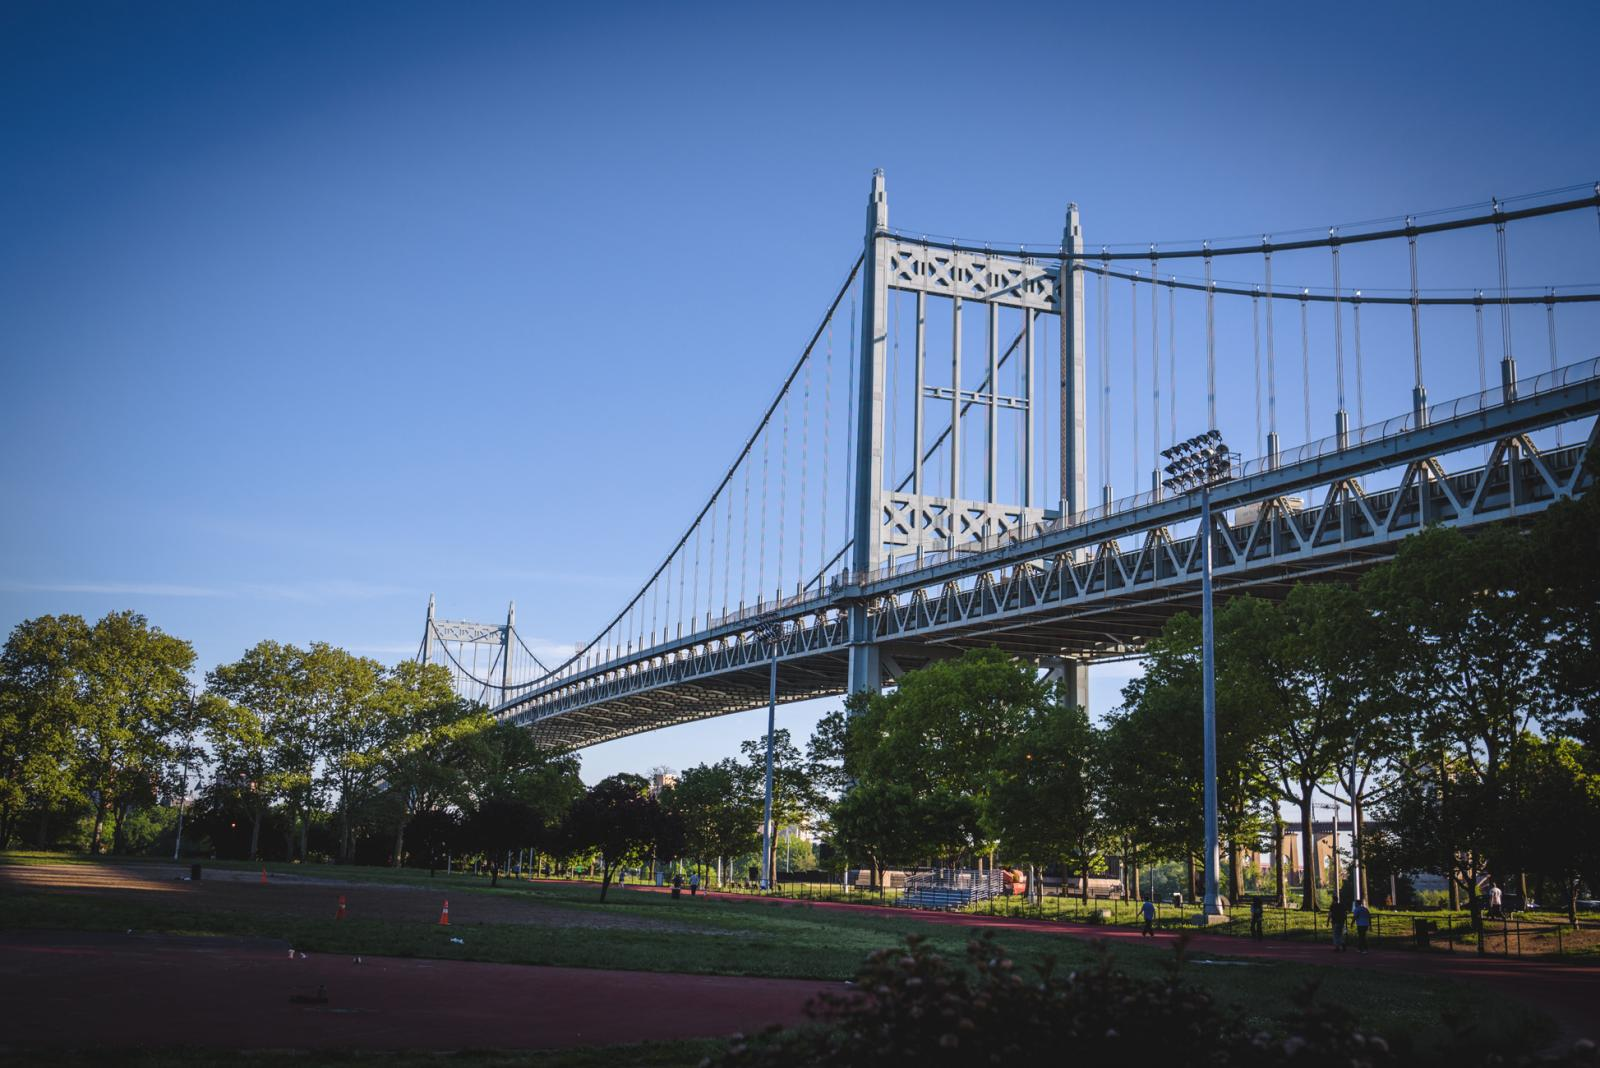 One of the best things to do in Astoria is being at Astoria Park